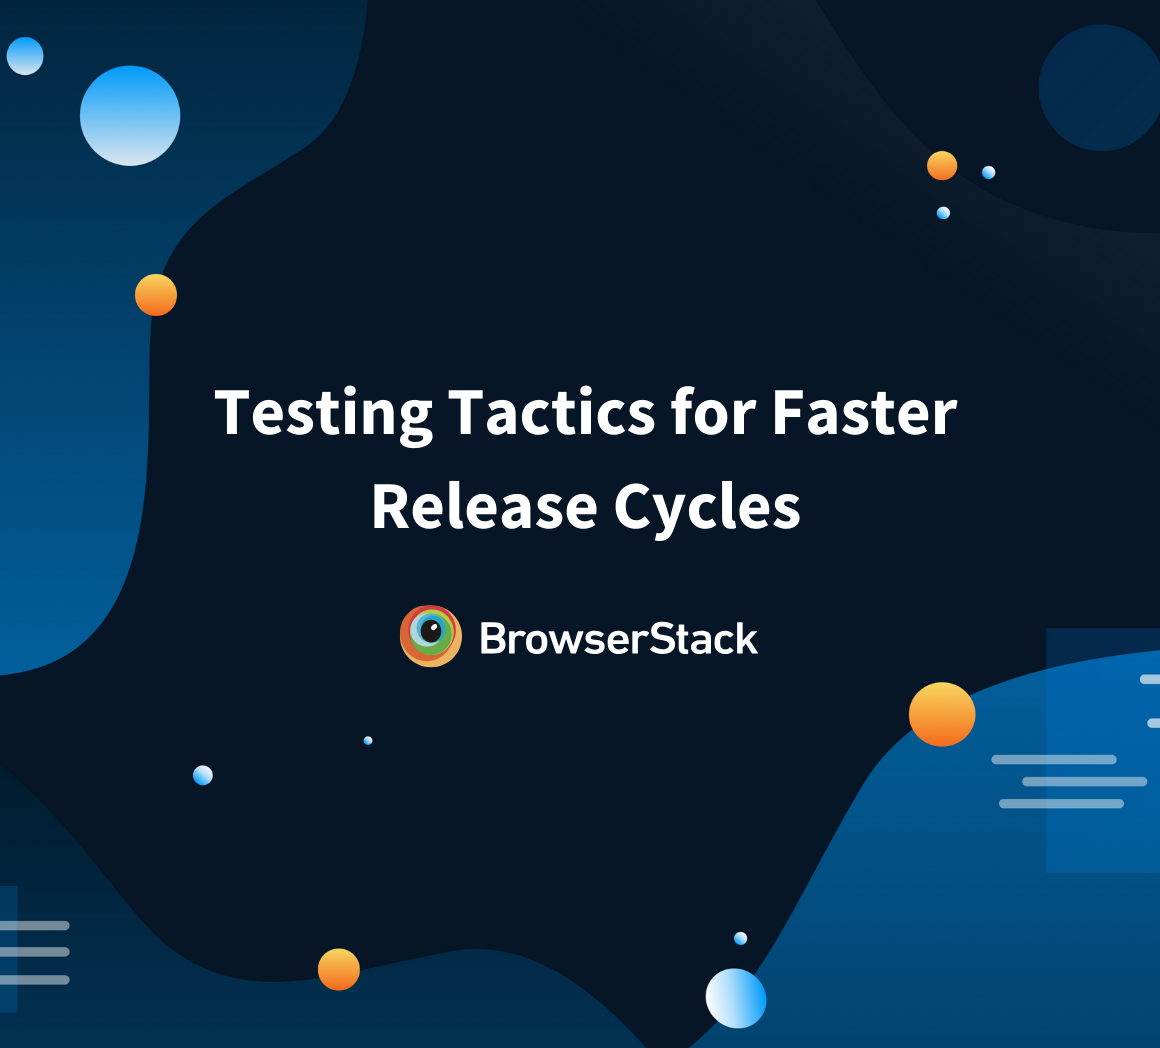 How to test for faster release cycles